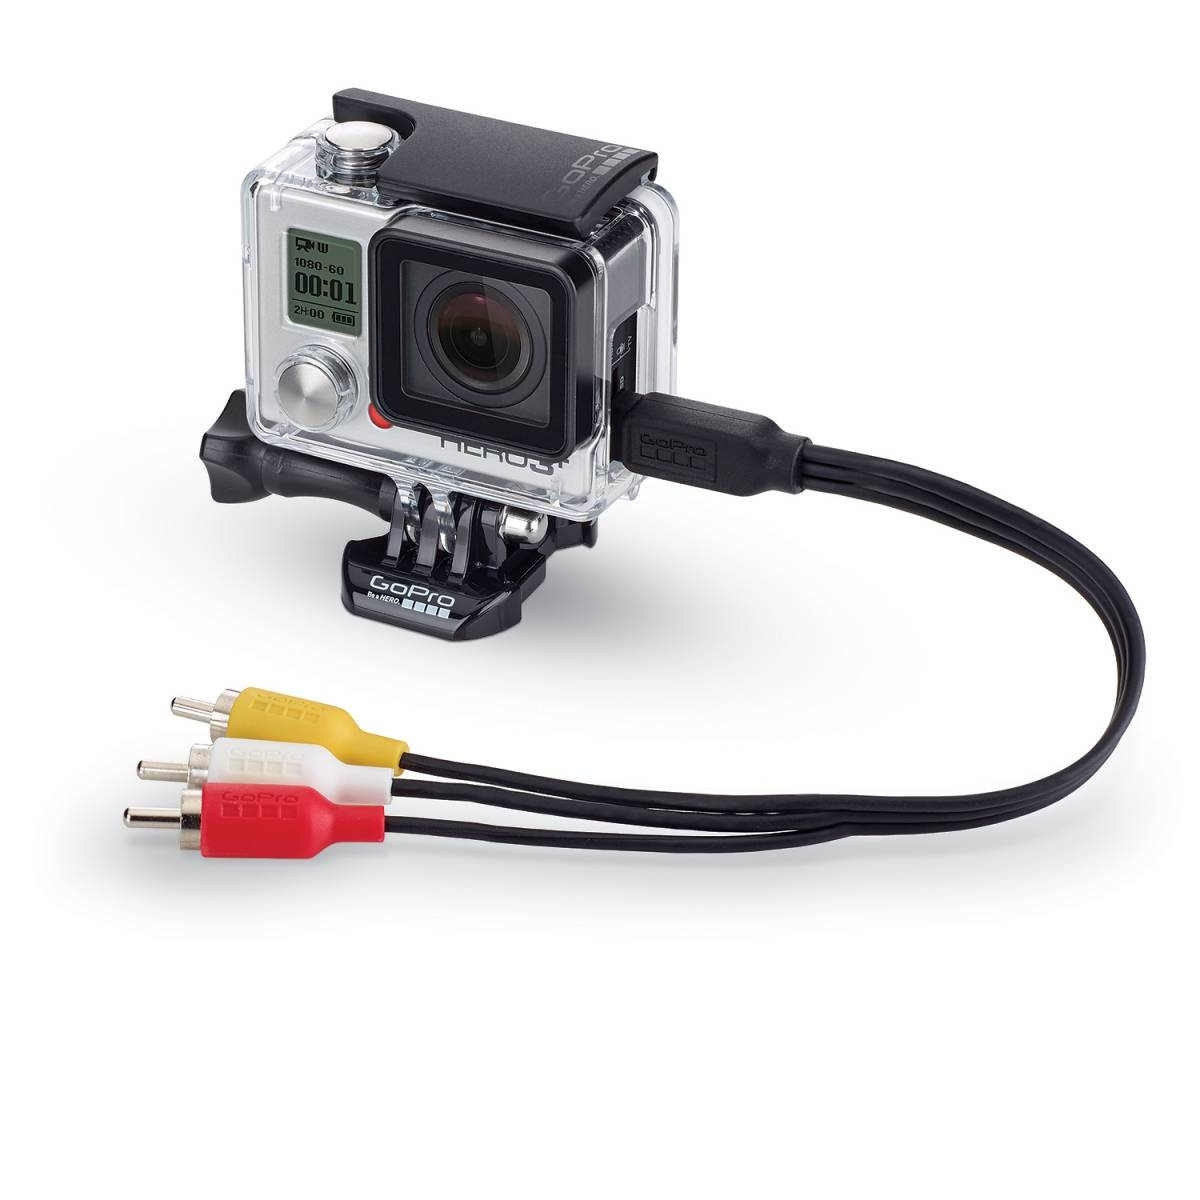 Cabo Original GoPro Video Componente Hero 3/3+/4 -Acmps-301